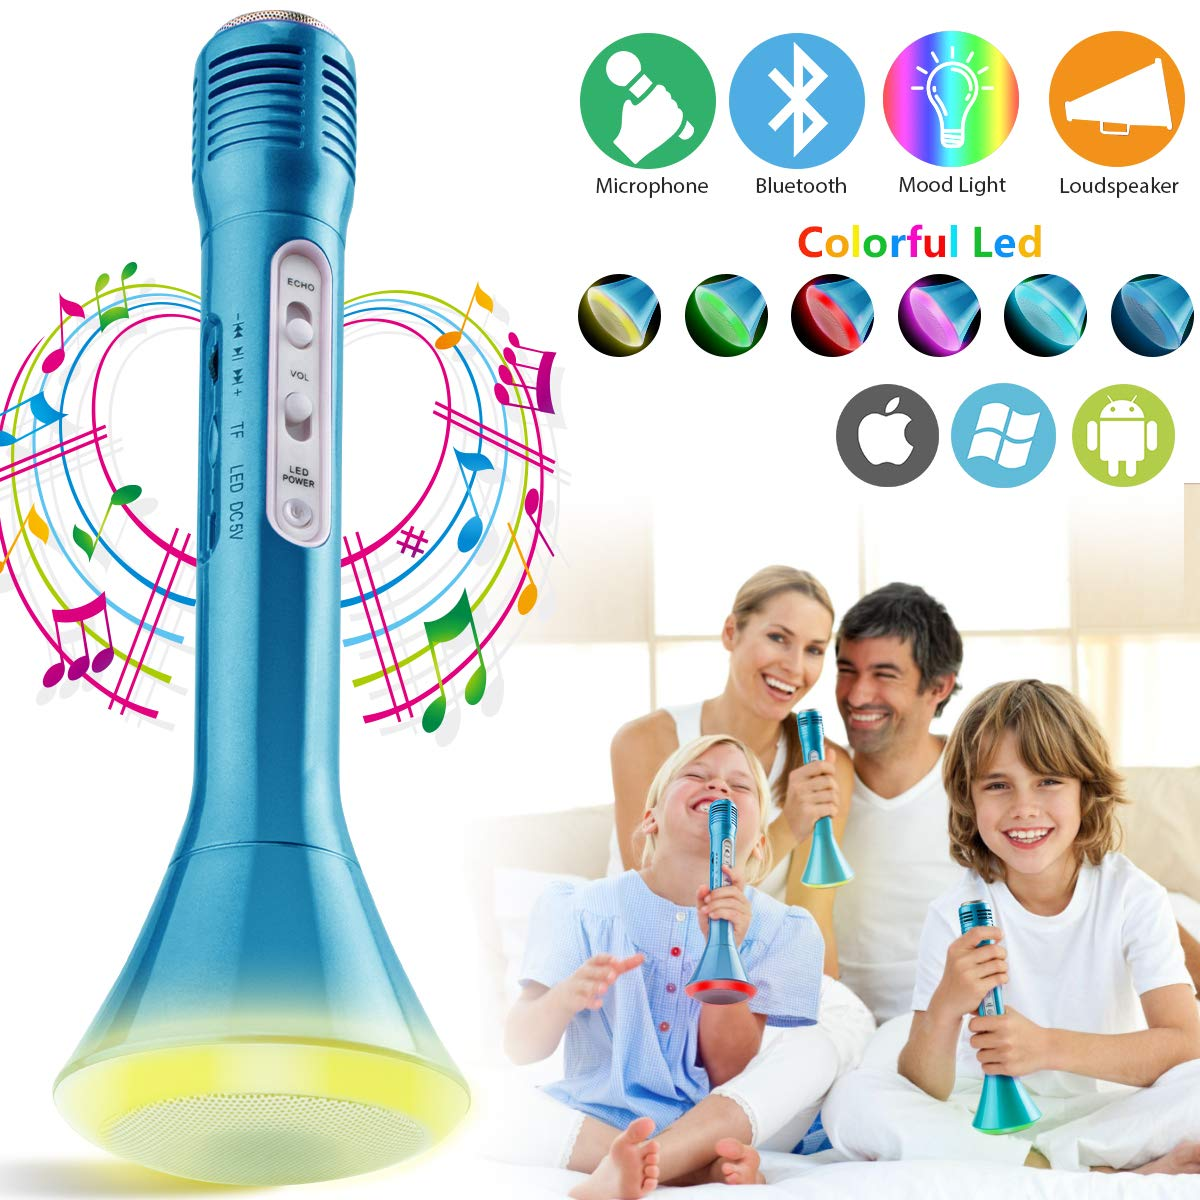 Karaoke Microphone for Kids, Kids Microphone Bluetooth With Speaker Wireless Echo Child Karaoke Mic Portable Cordless Singing Machine for Music Boys Girls Adult Party Gift Andriod IOS Phones (Blue) by Pasobass